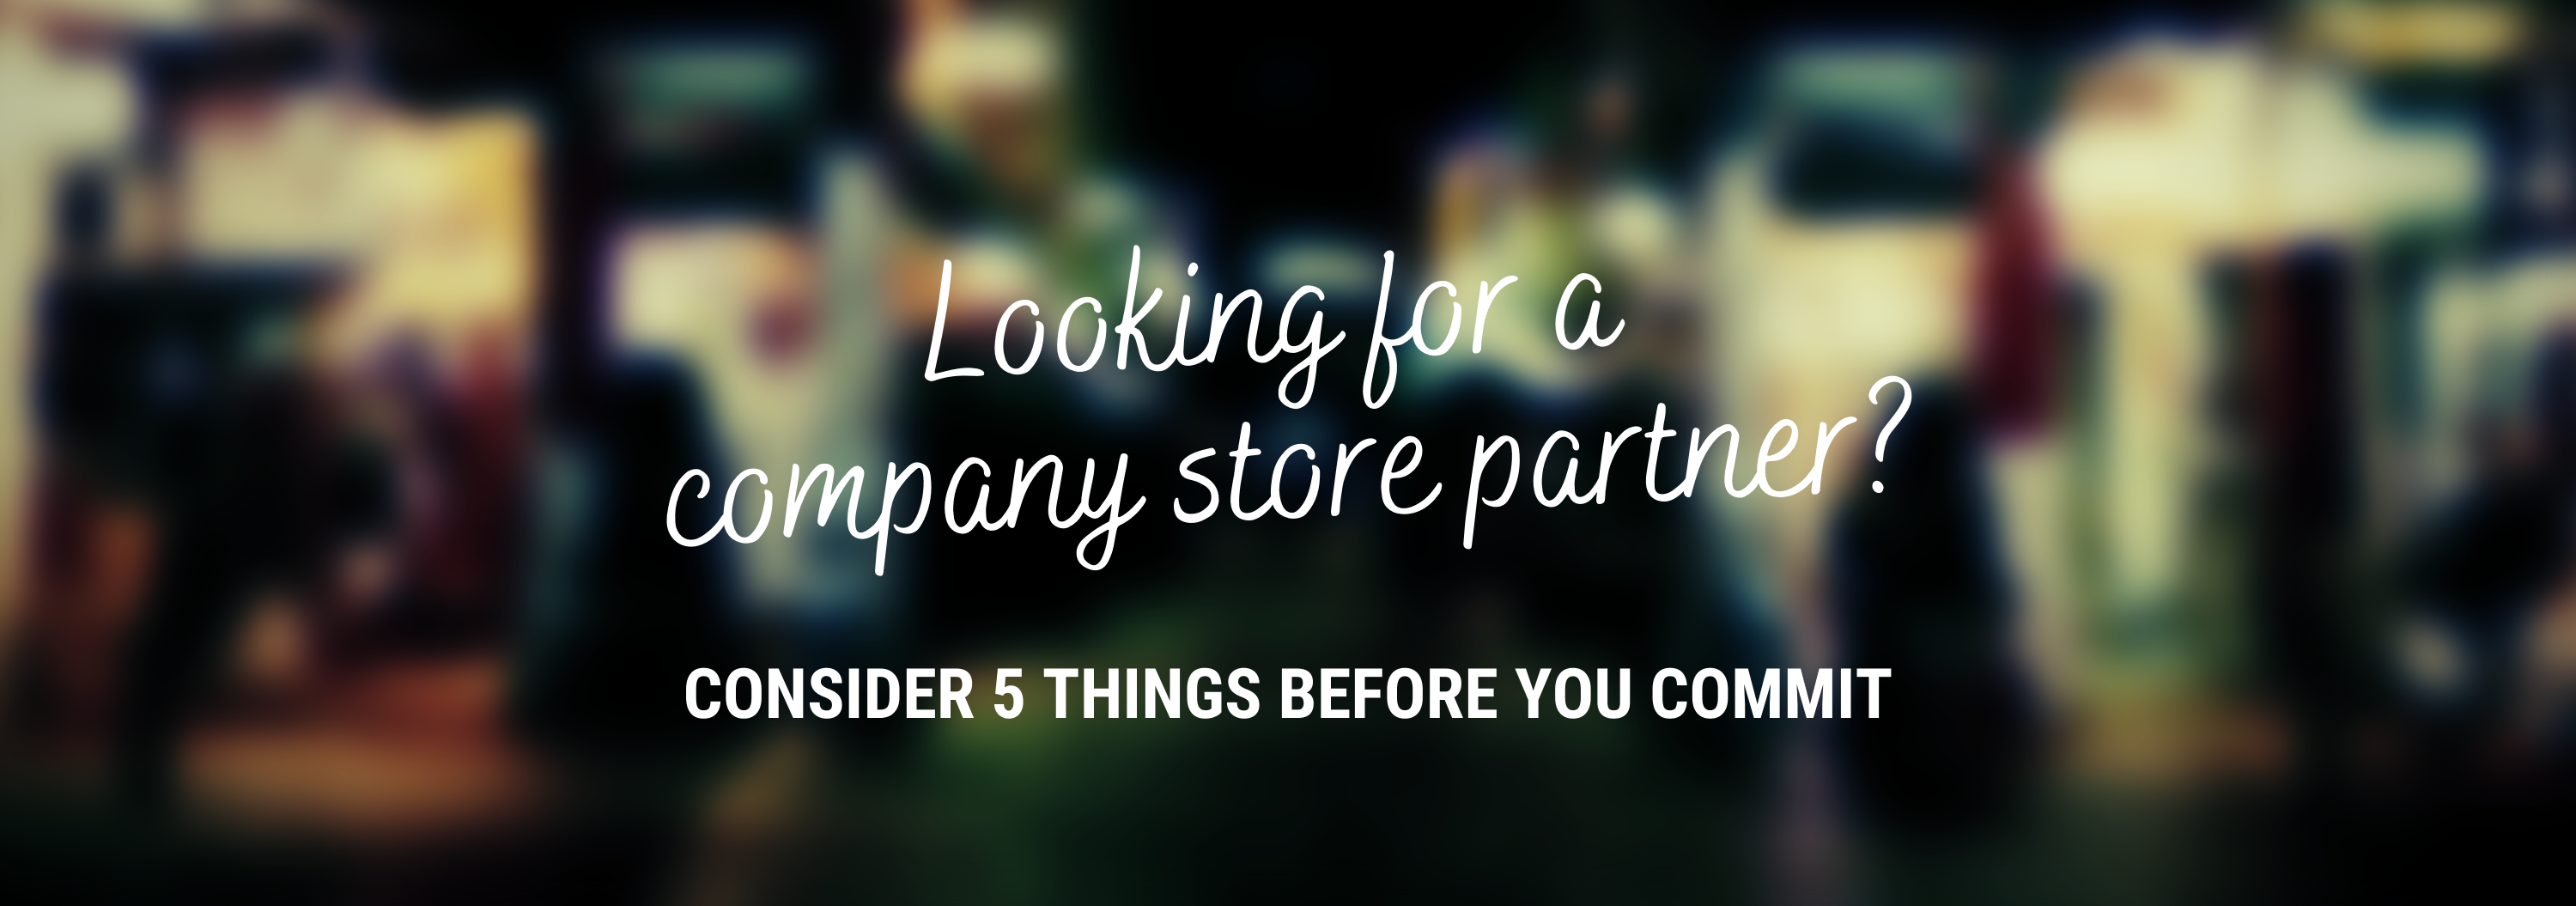 Looking for a company store partner? Consider 5 things before you commit.